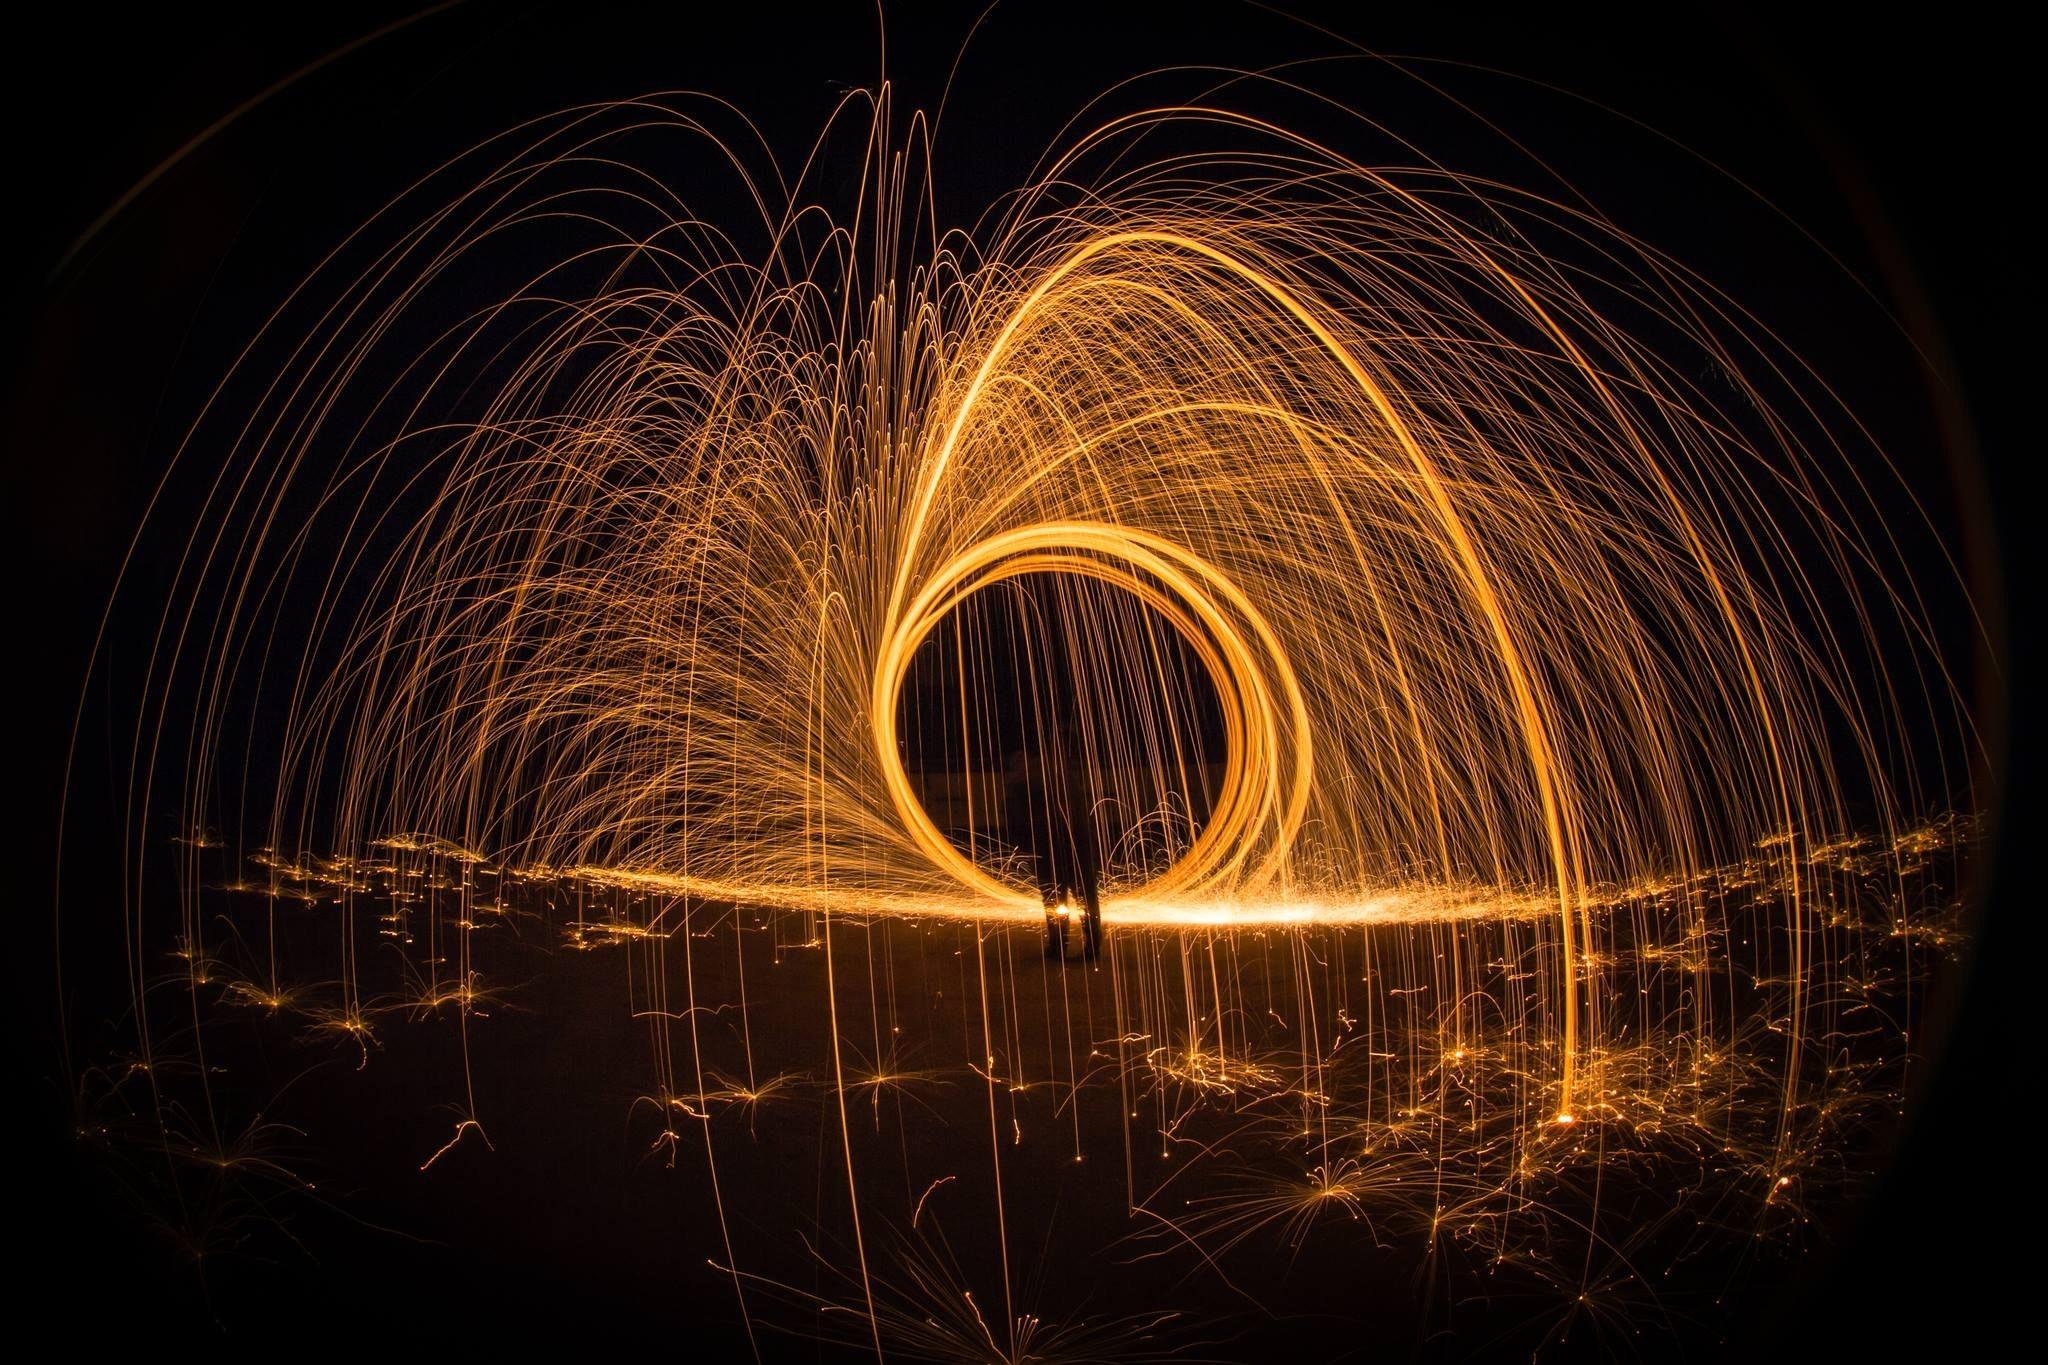 light-painting-at-night-327509